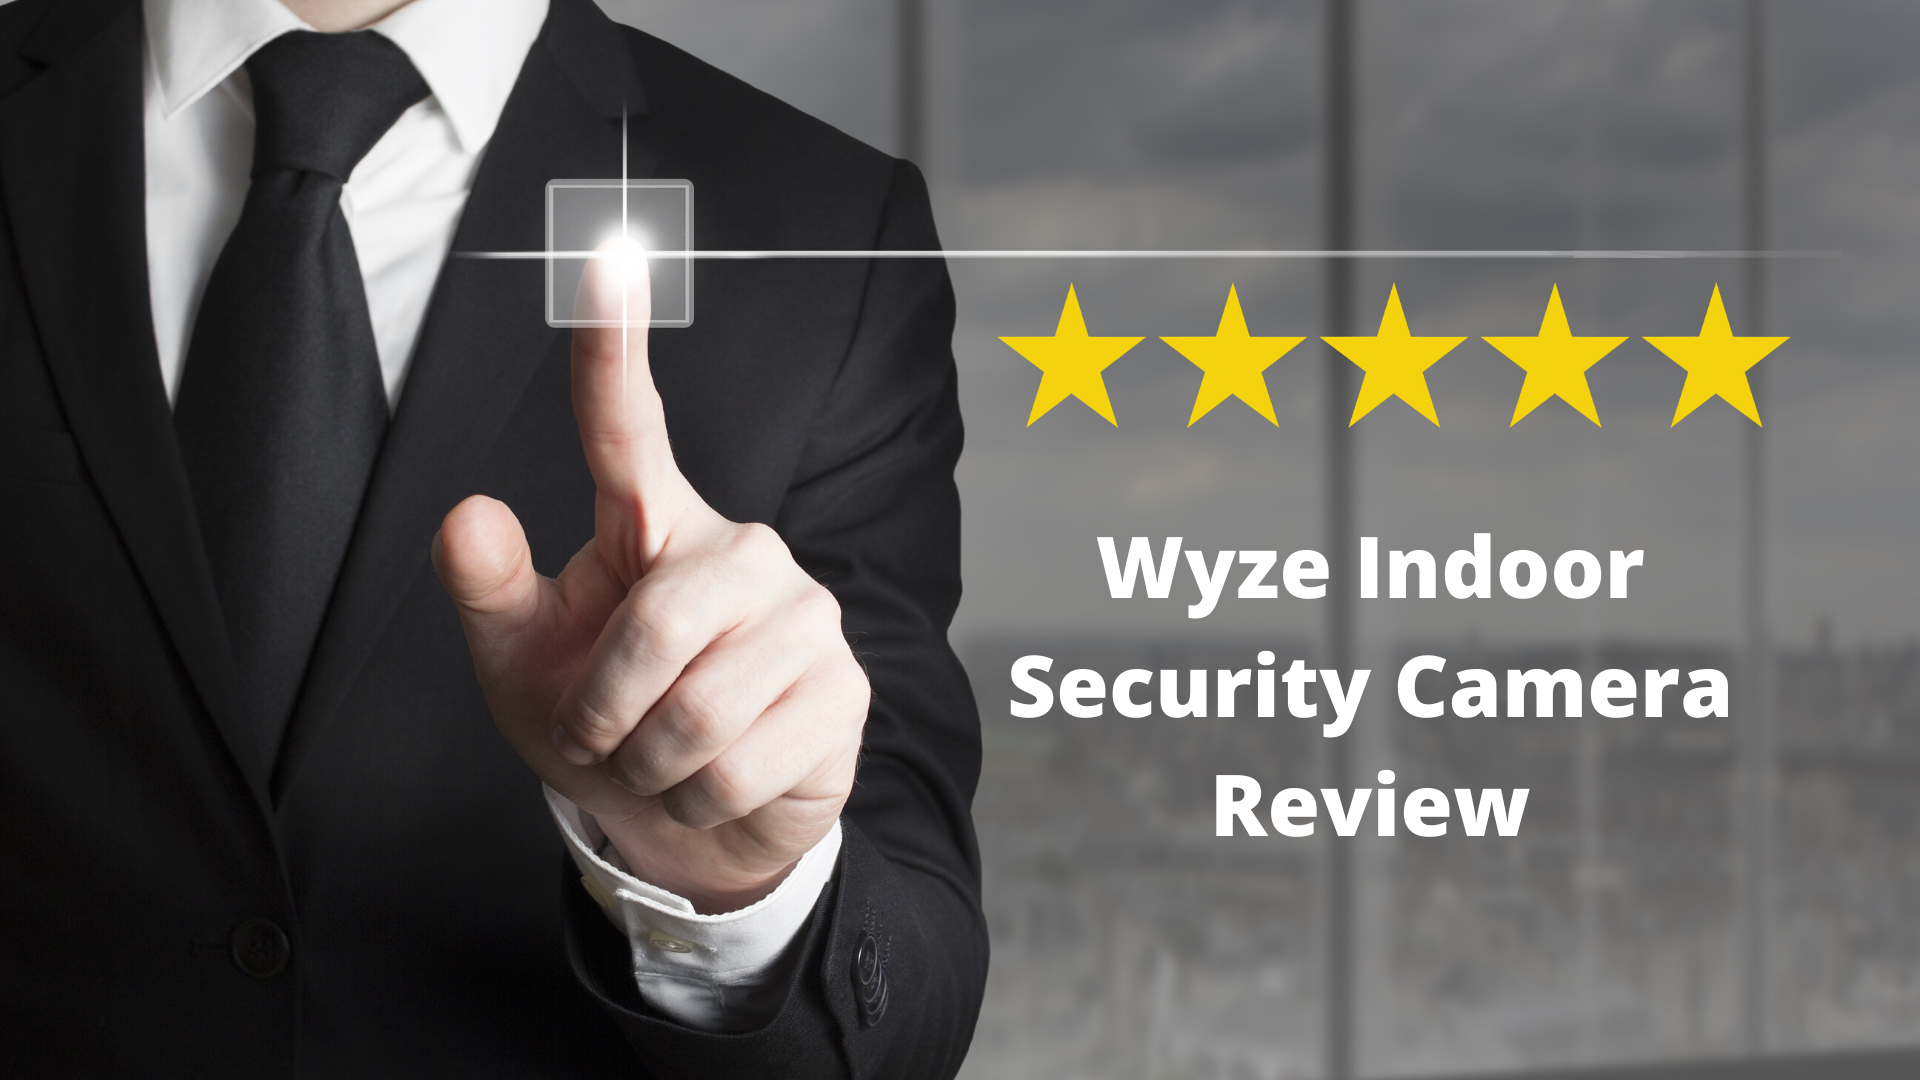 Wyze Indoor Security Camera Review